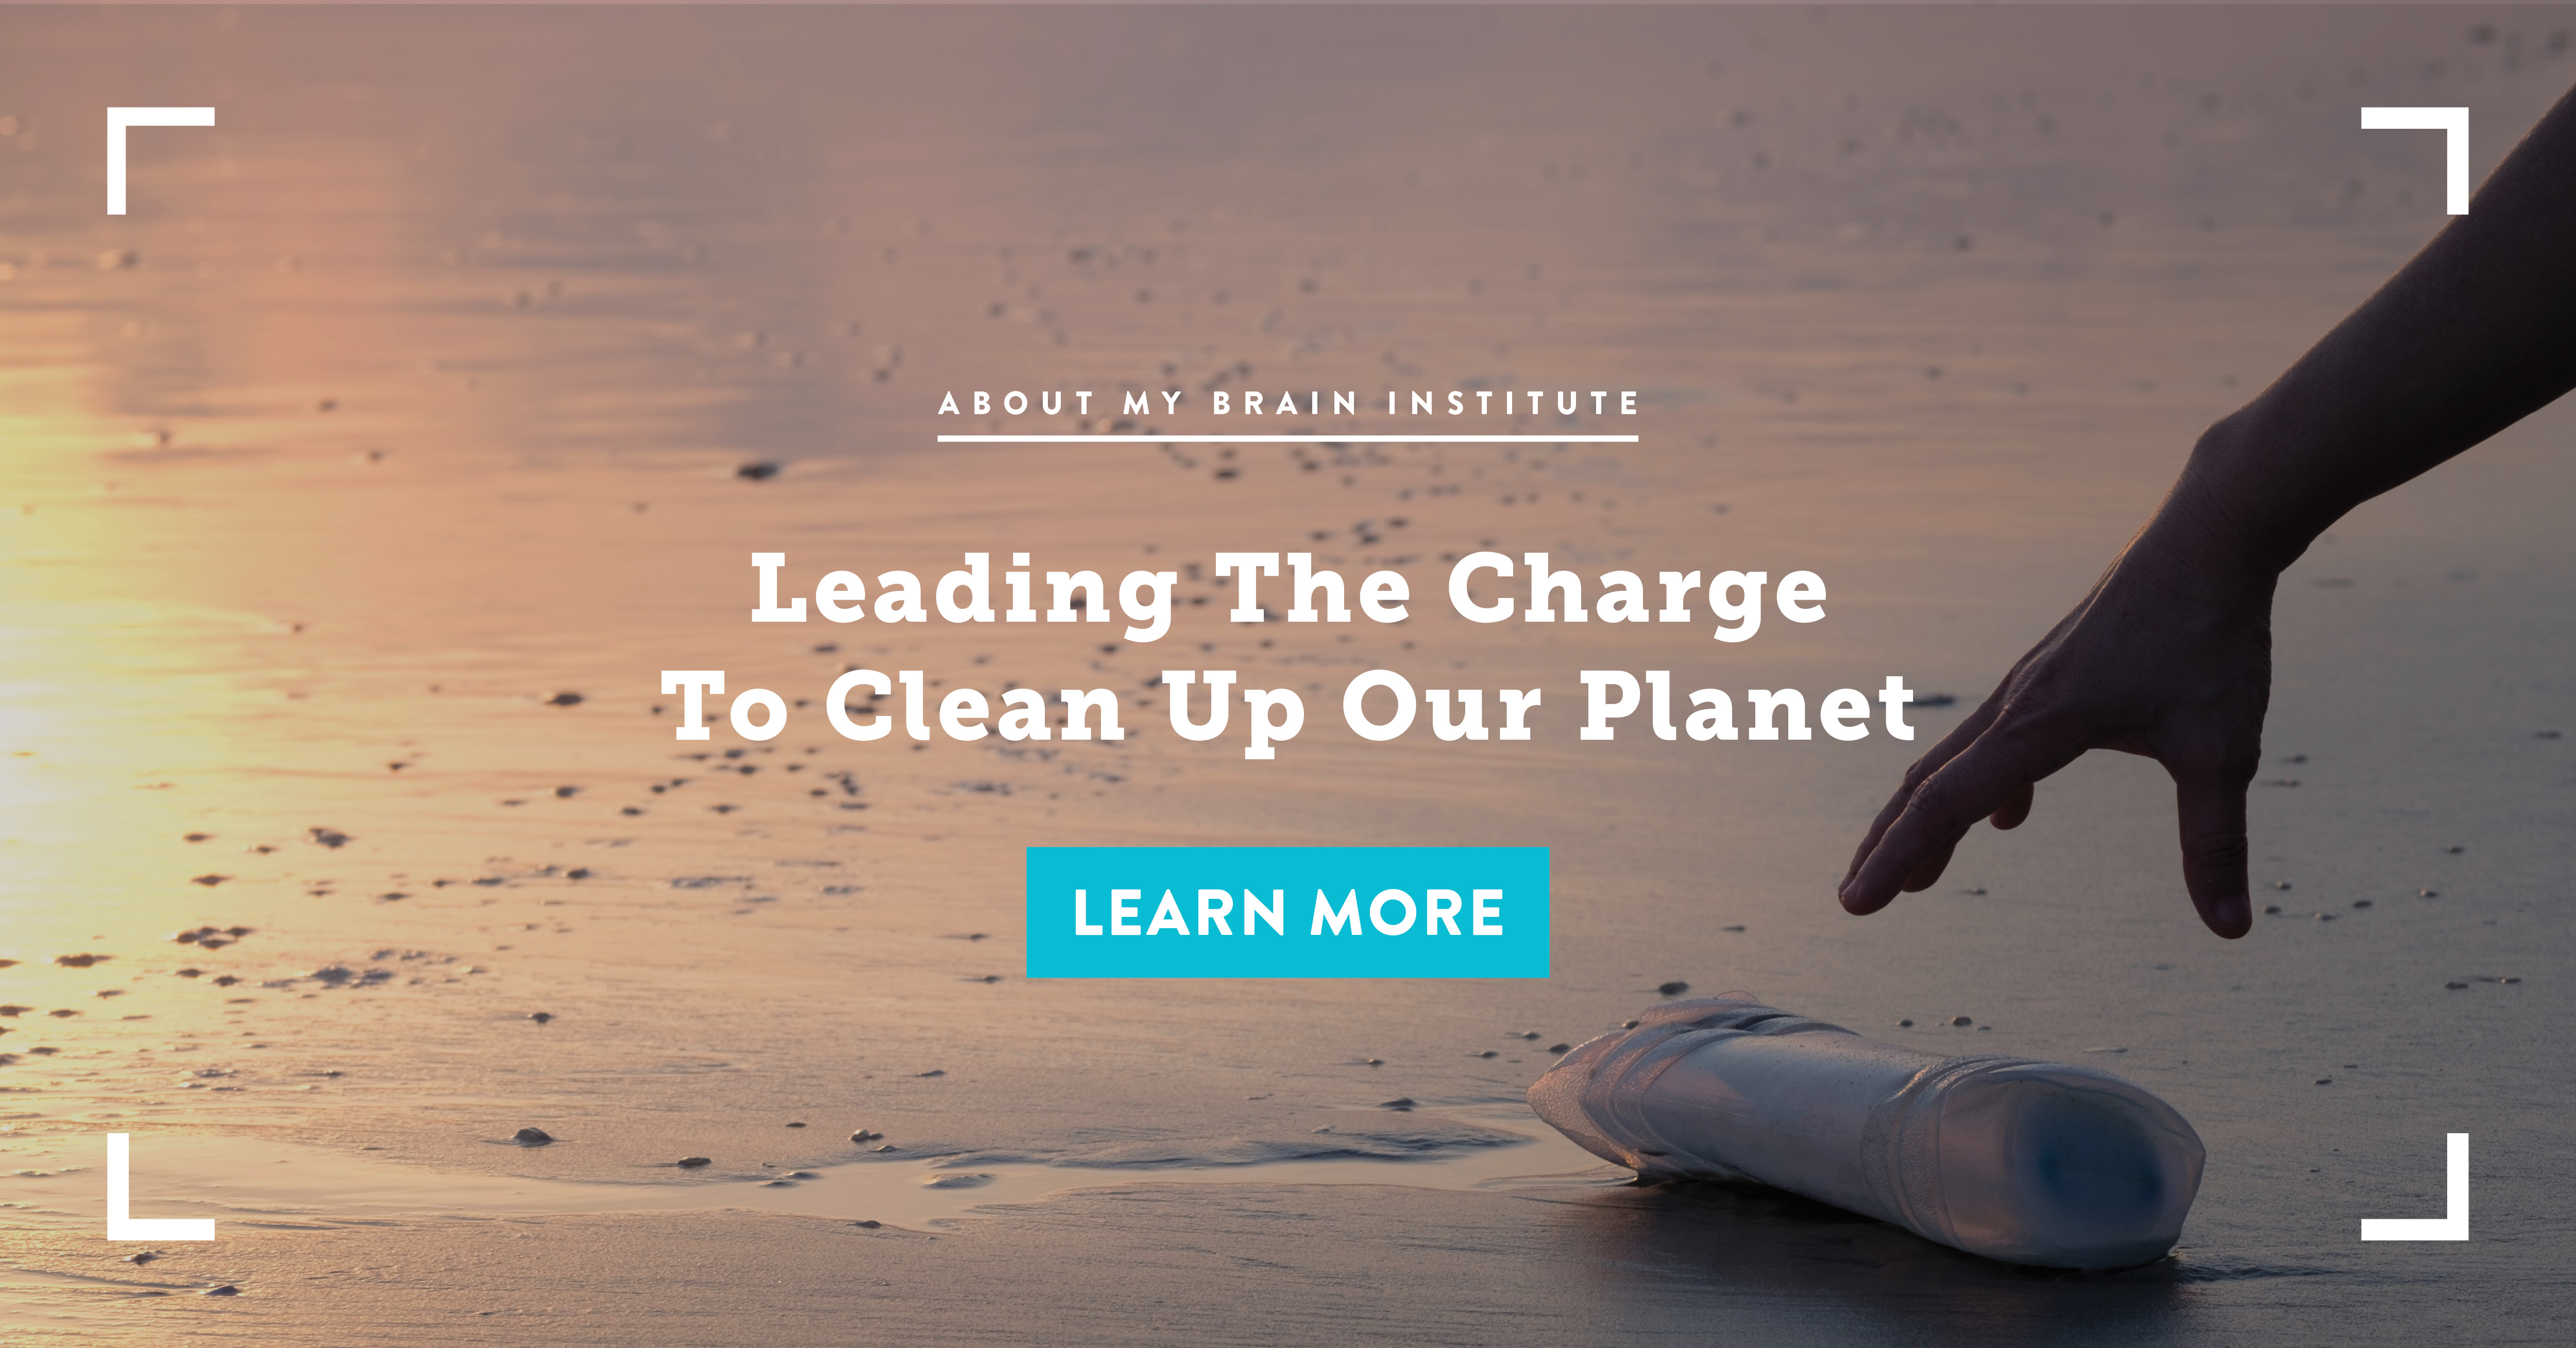 Leading The Charge To Clean Up Our Planet